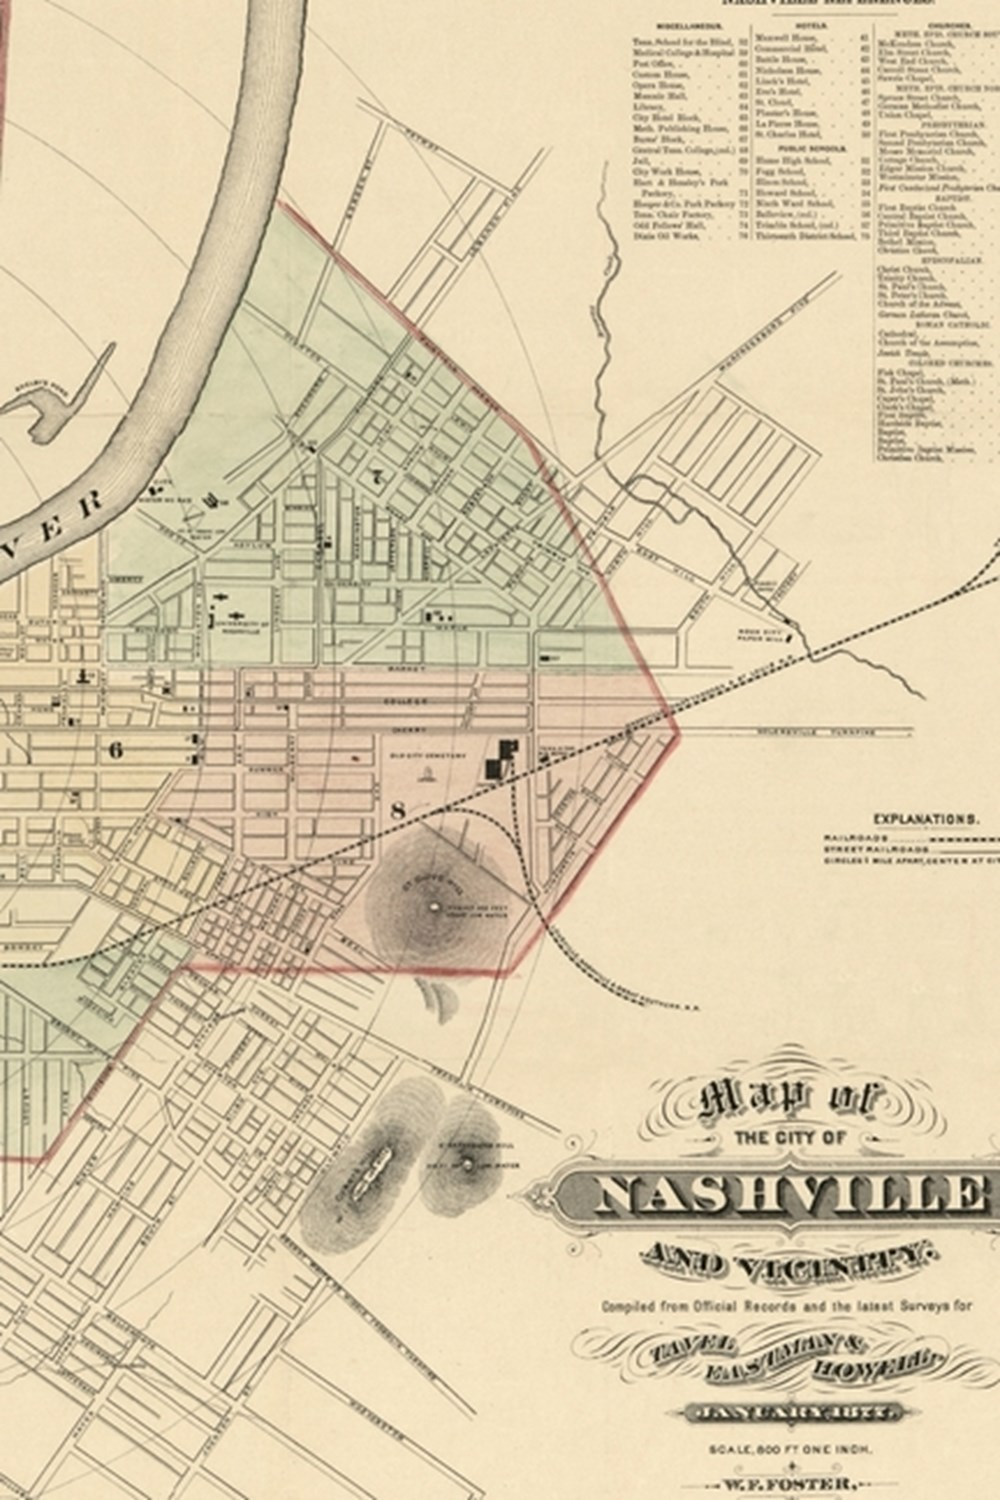 1877 Century Map of Nashville, Tennessee - A Poetose Notebook / Journal / Diary (50 pages/25 sheets)